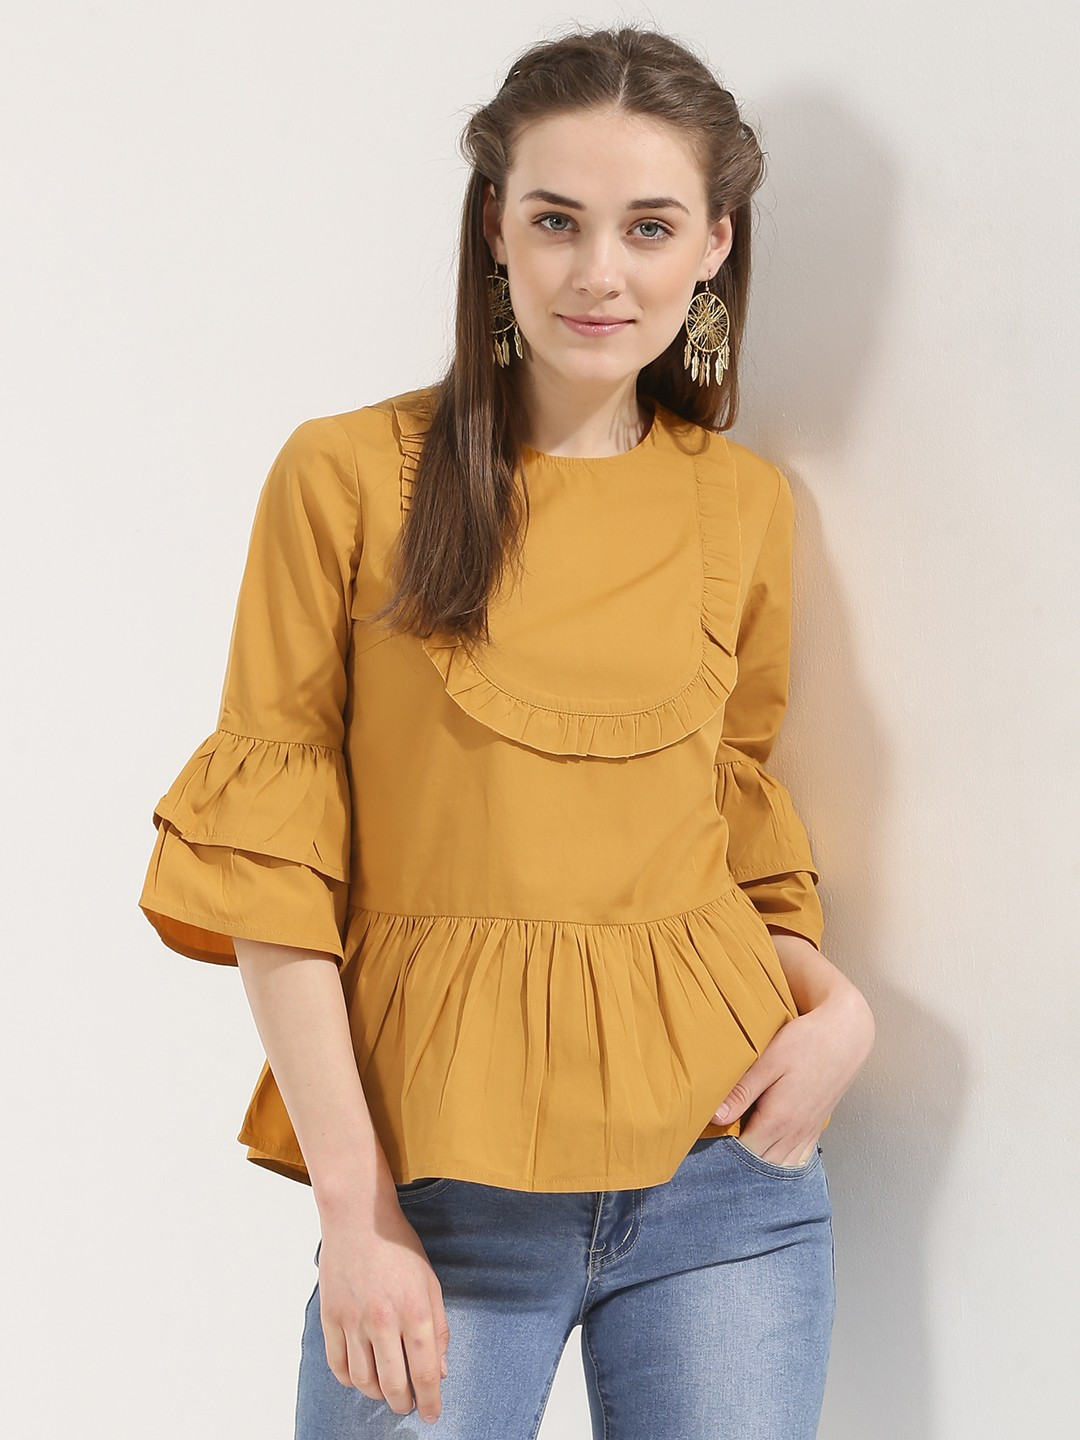 Blouses are that universal piece of clothes that you can wear in any season and with confidence for every occasion. From day to night you can nail a blouse with the right accessories, shoes, pants or skirts.